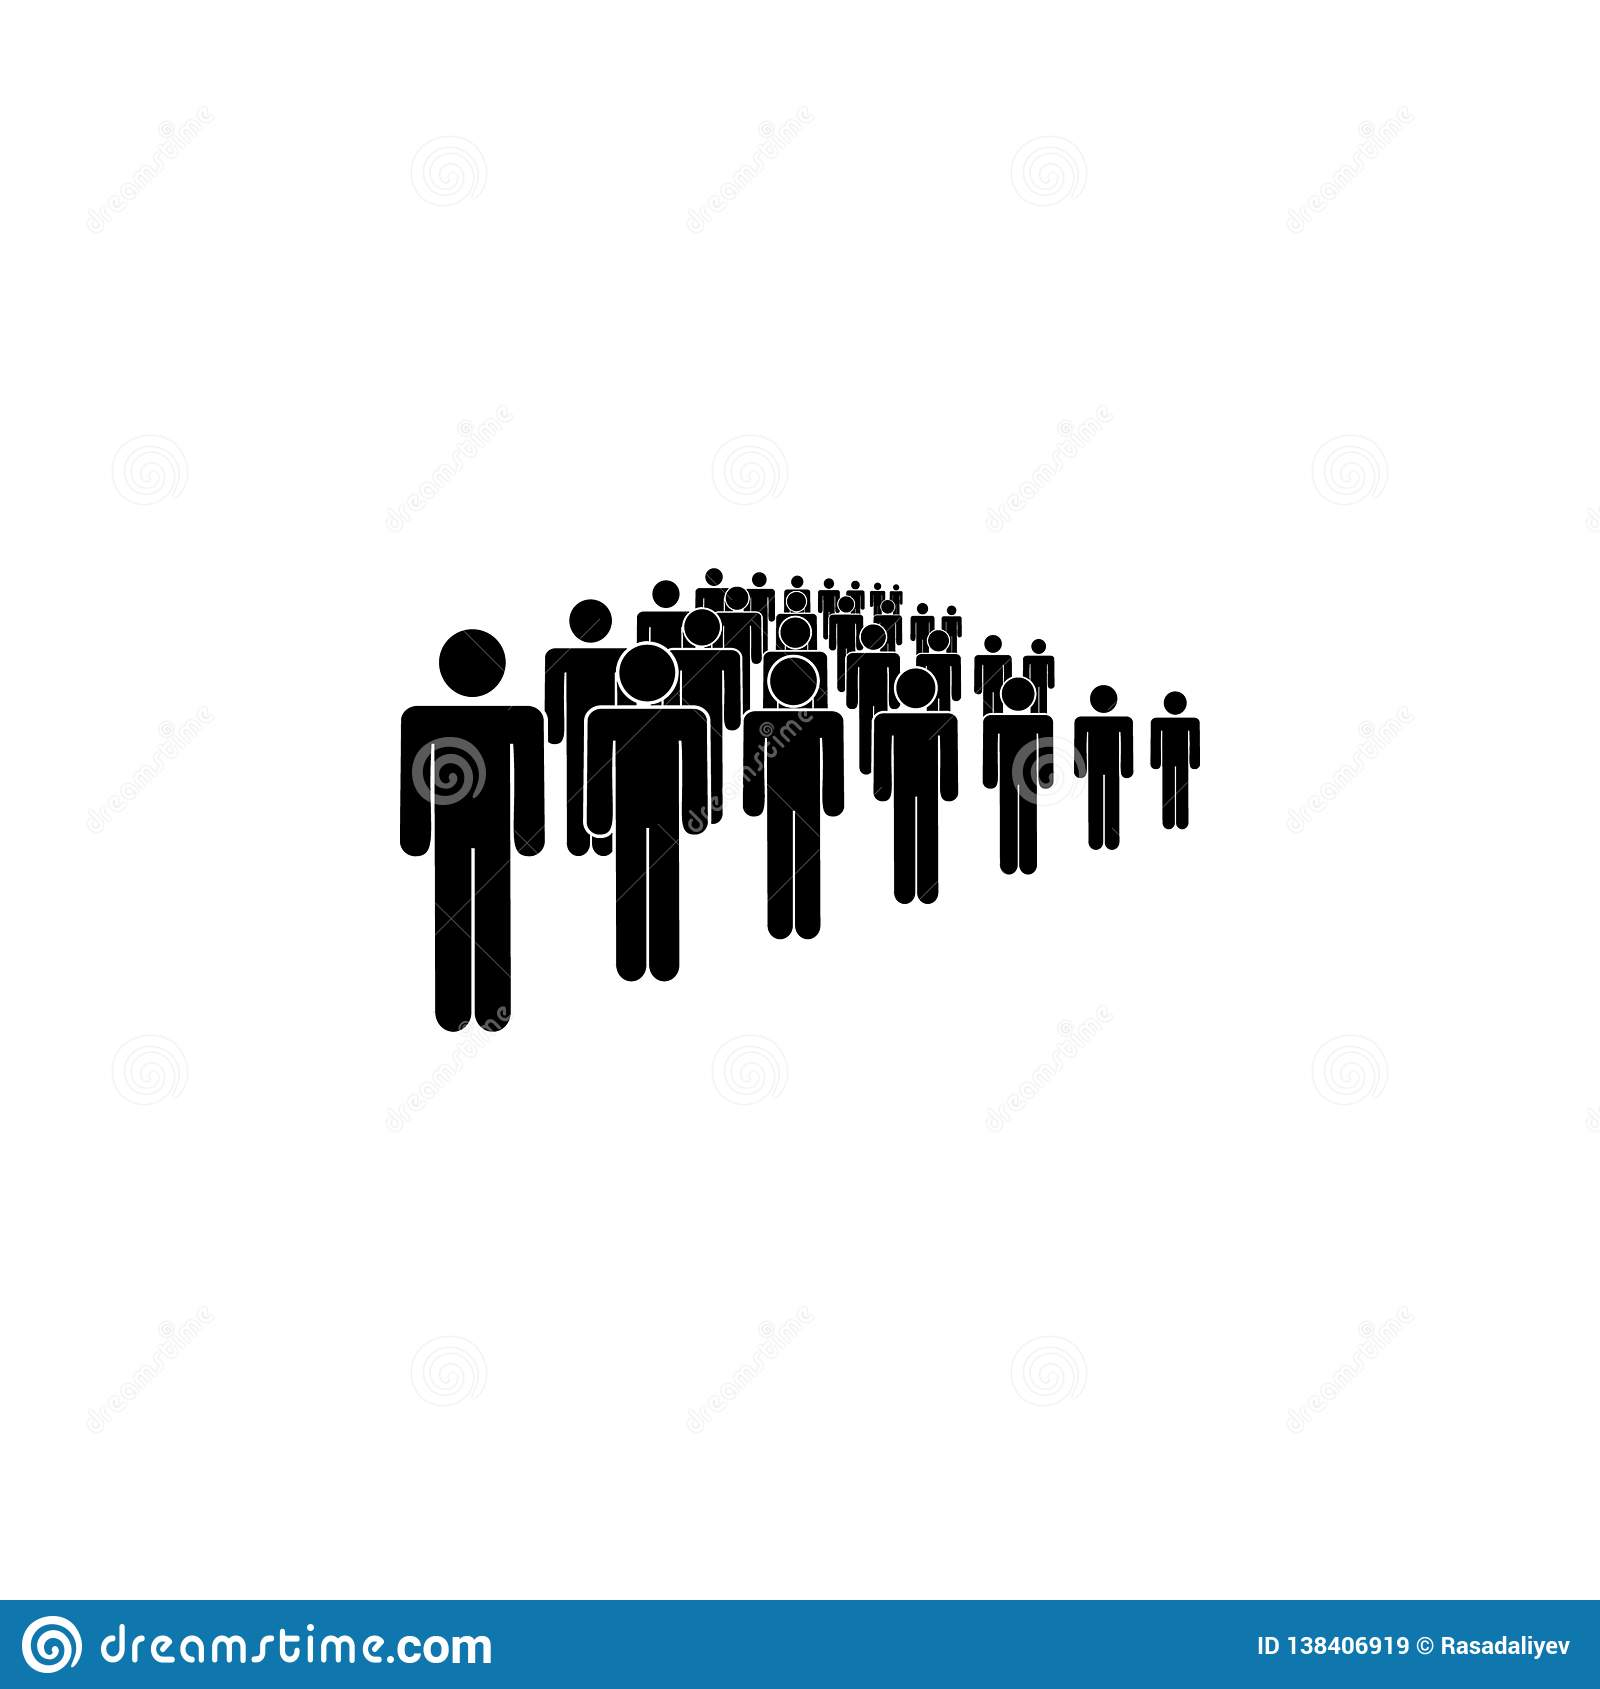 people, society, rank icon. Element of a group of people icon. Premium quality graphic design icon. Signs and symbols collection